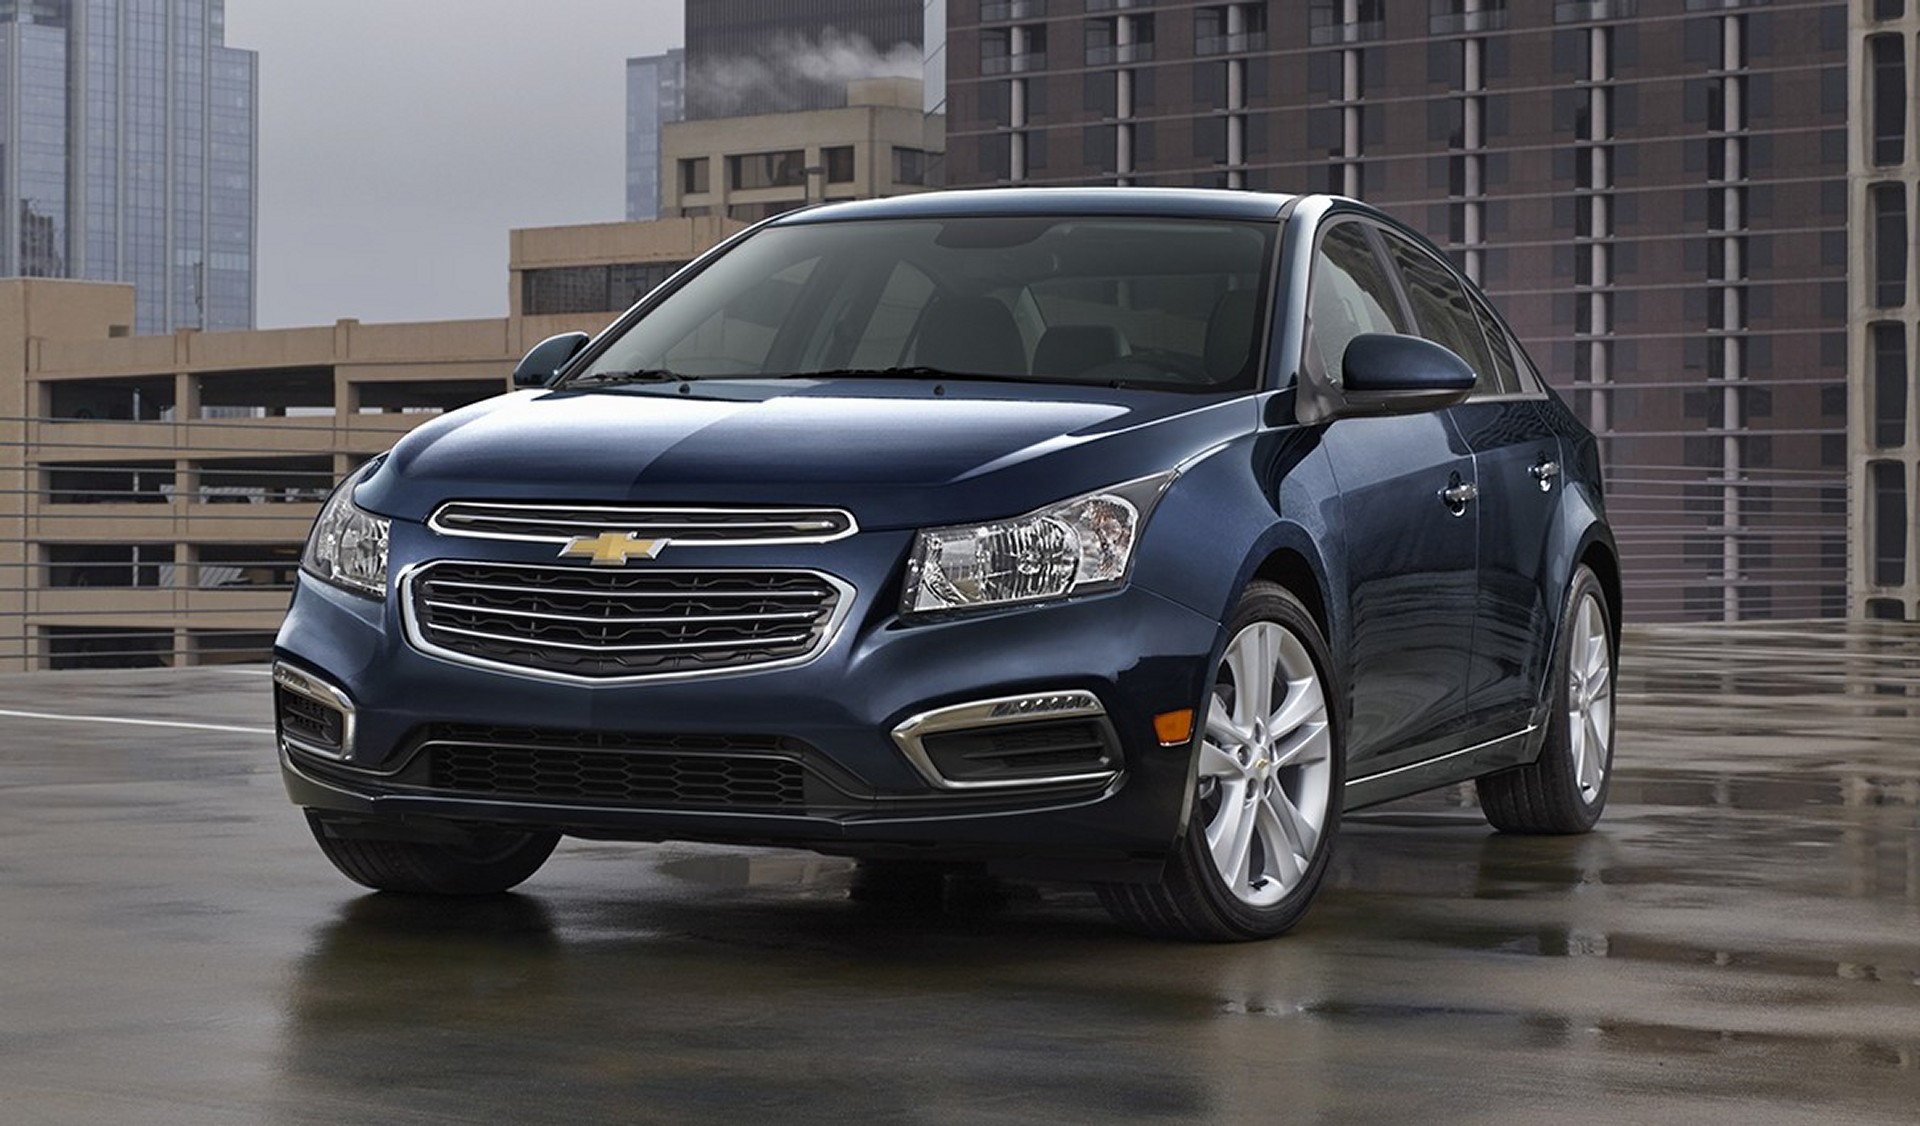 new 2016 chevy cruze to sell alongside older 39 cruze limited 39. Black Bedroom Furniture Sets. Home Design Ideas